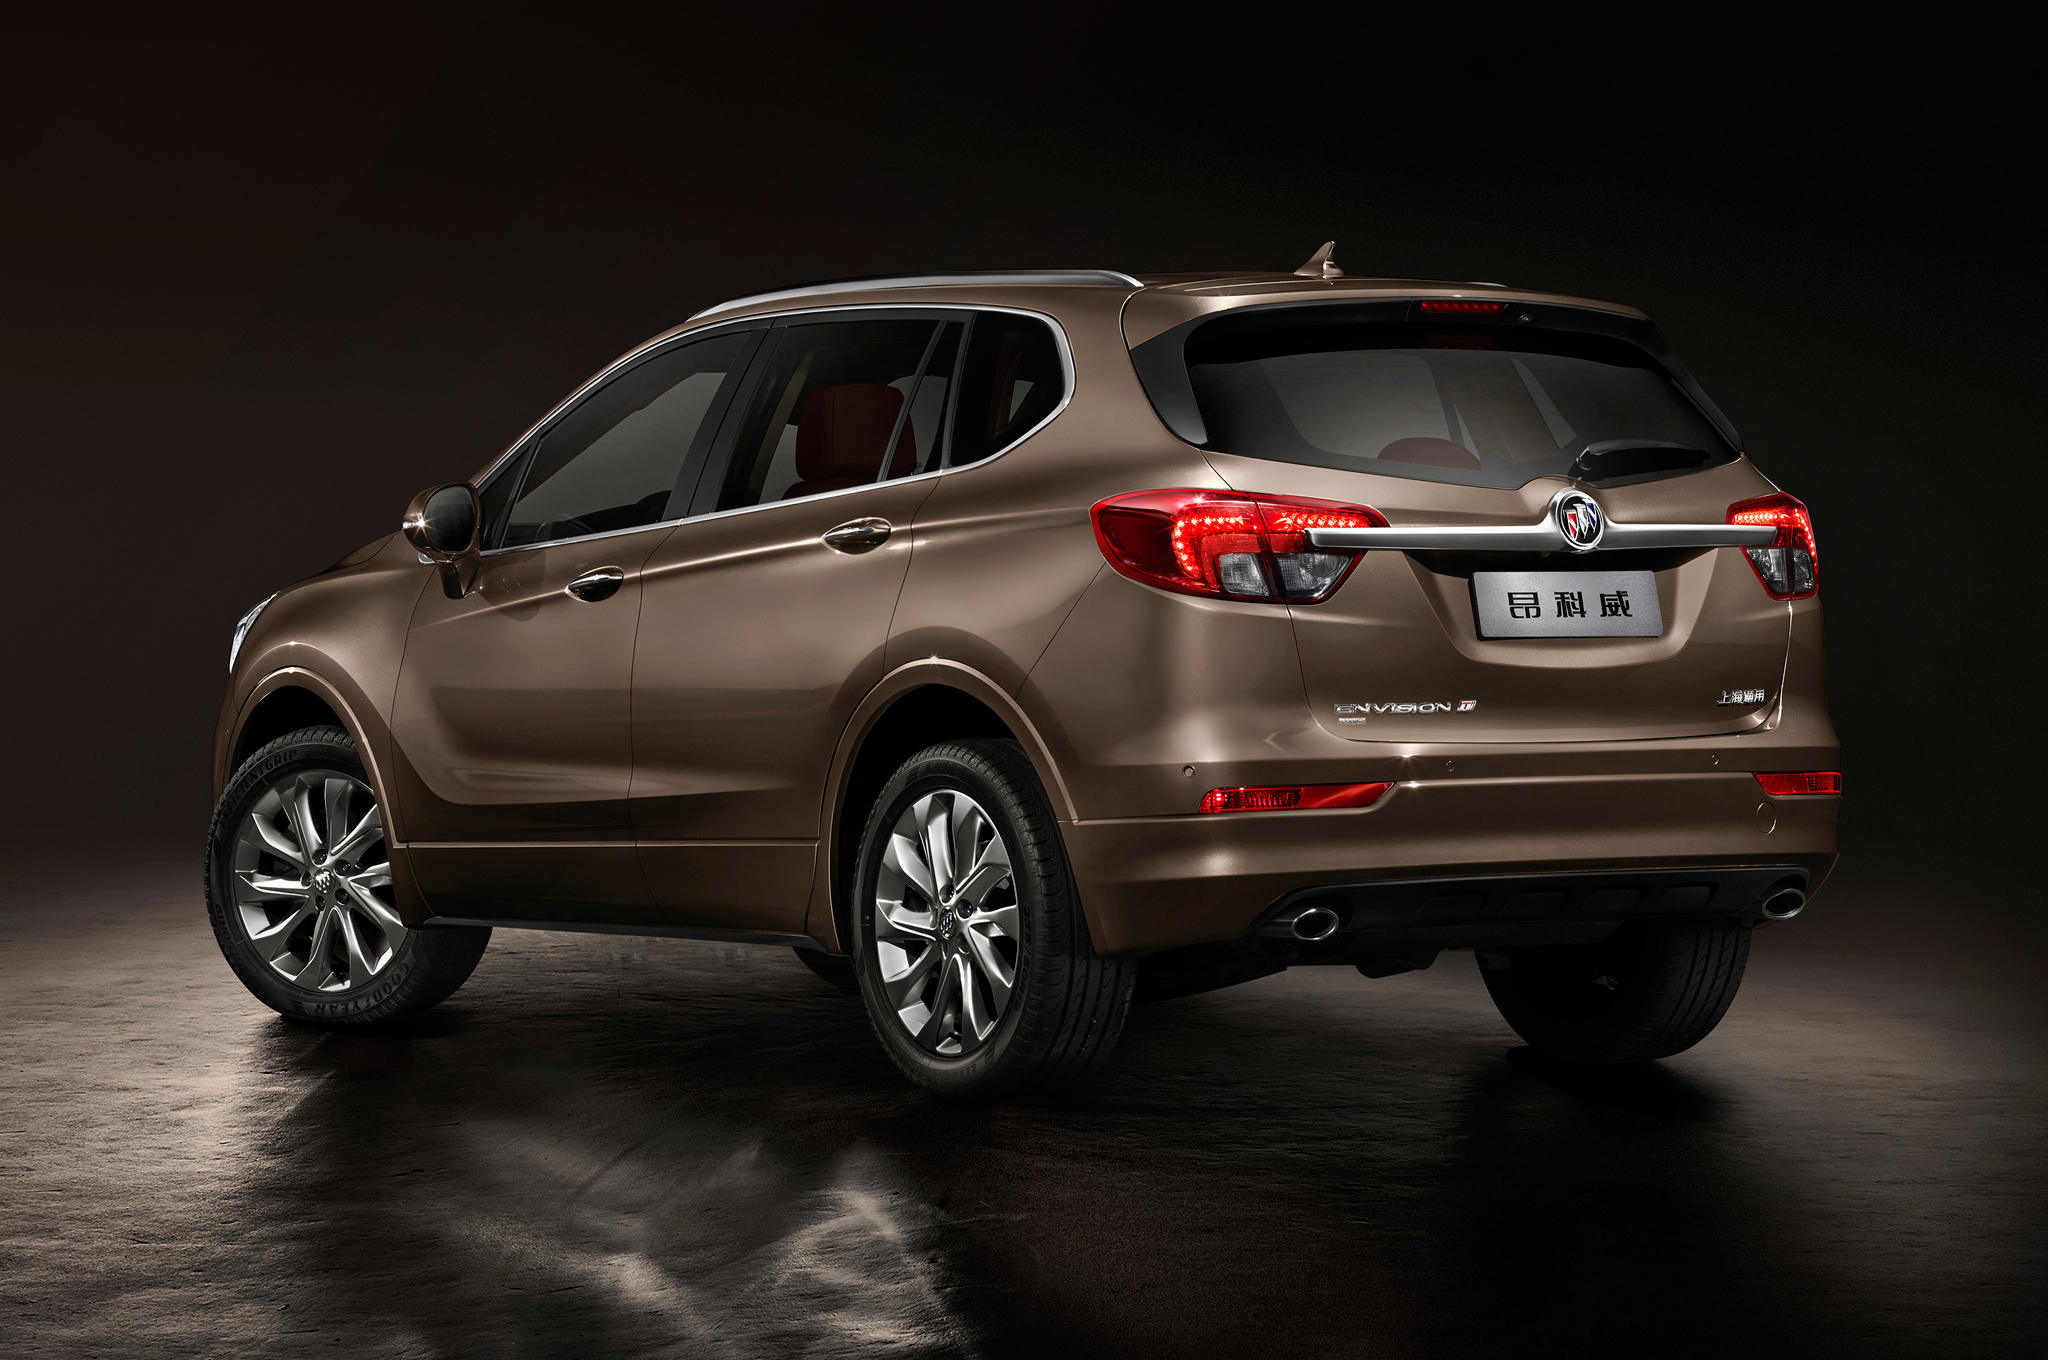 buick envision compact crossover most likely coming to canada. Black Bedroom Furniture Sets. Home Design Ideas